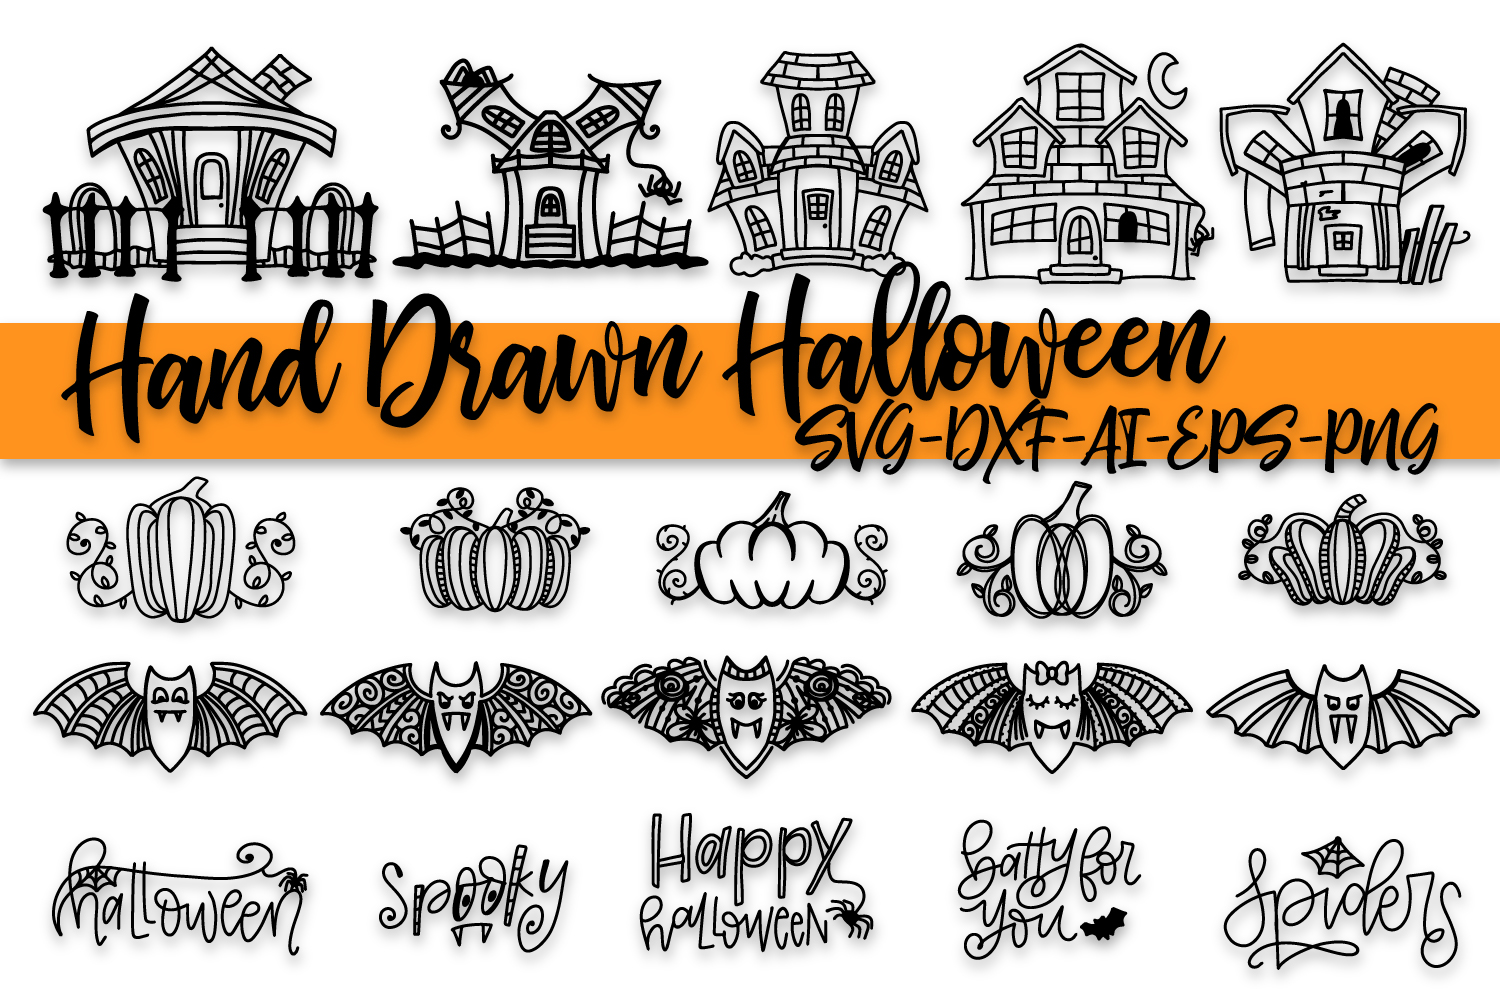 Download Free Hand Drawn Halloween Bundle Graphic By Justina Tracy Creative for Cricut Explore, Silhouette and other cutting machines.